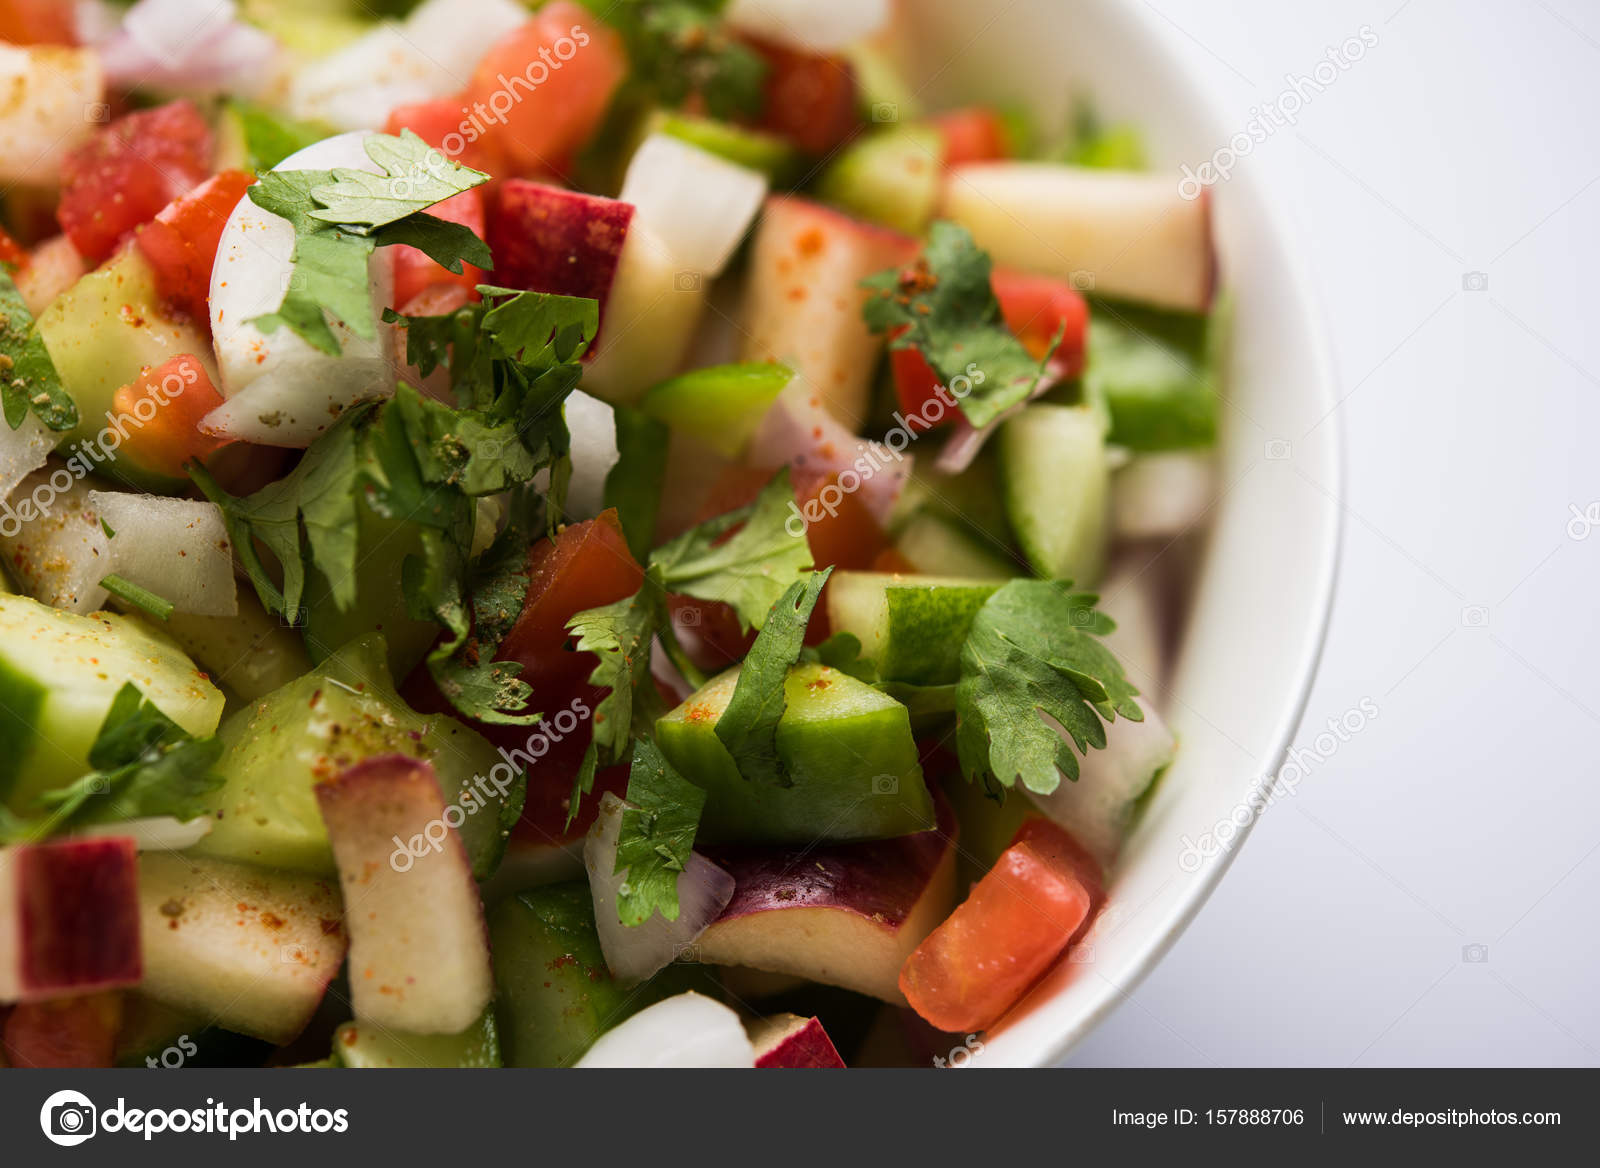 Indian Green Salad Also Known As Kachumber Is A Colourful Salad Dish In Indian Cuisine Consisting Of Fresh Chopped Tomatoes Cucumbers Onions And Sometimes Chili Peppers Selective Focus Stock Photo Image